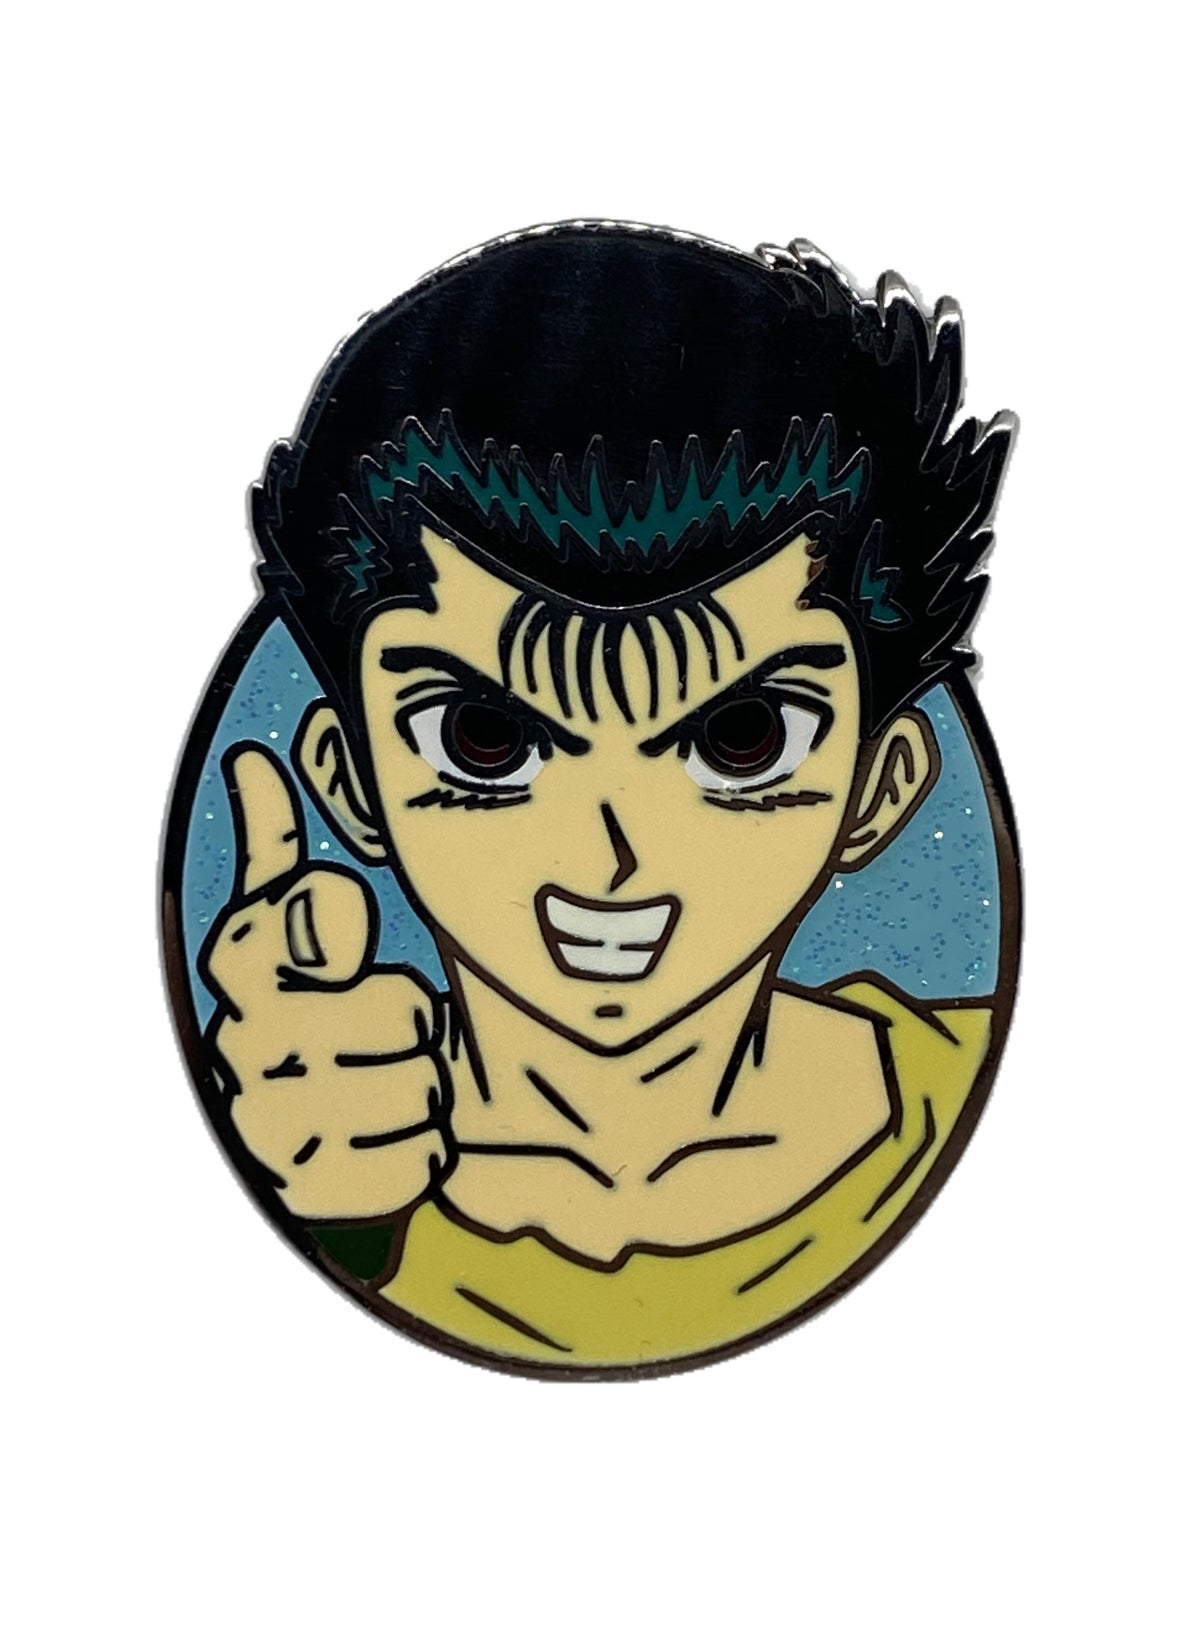 The Delinquent Hero Hard Enamel Pin